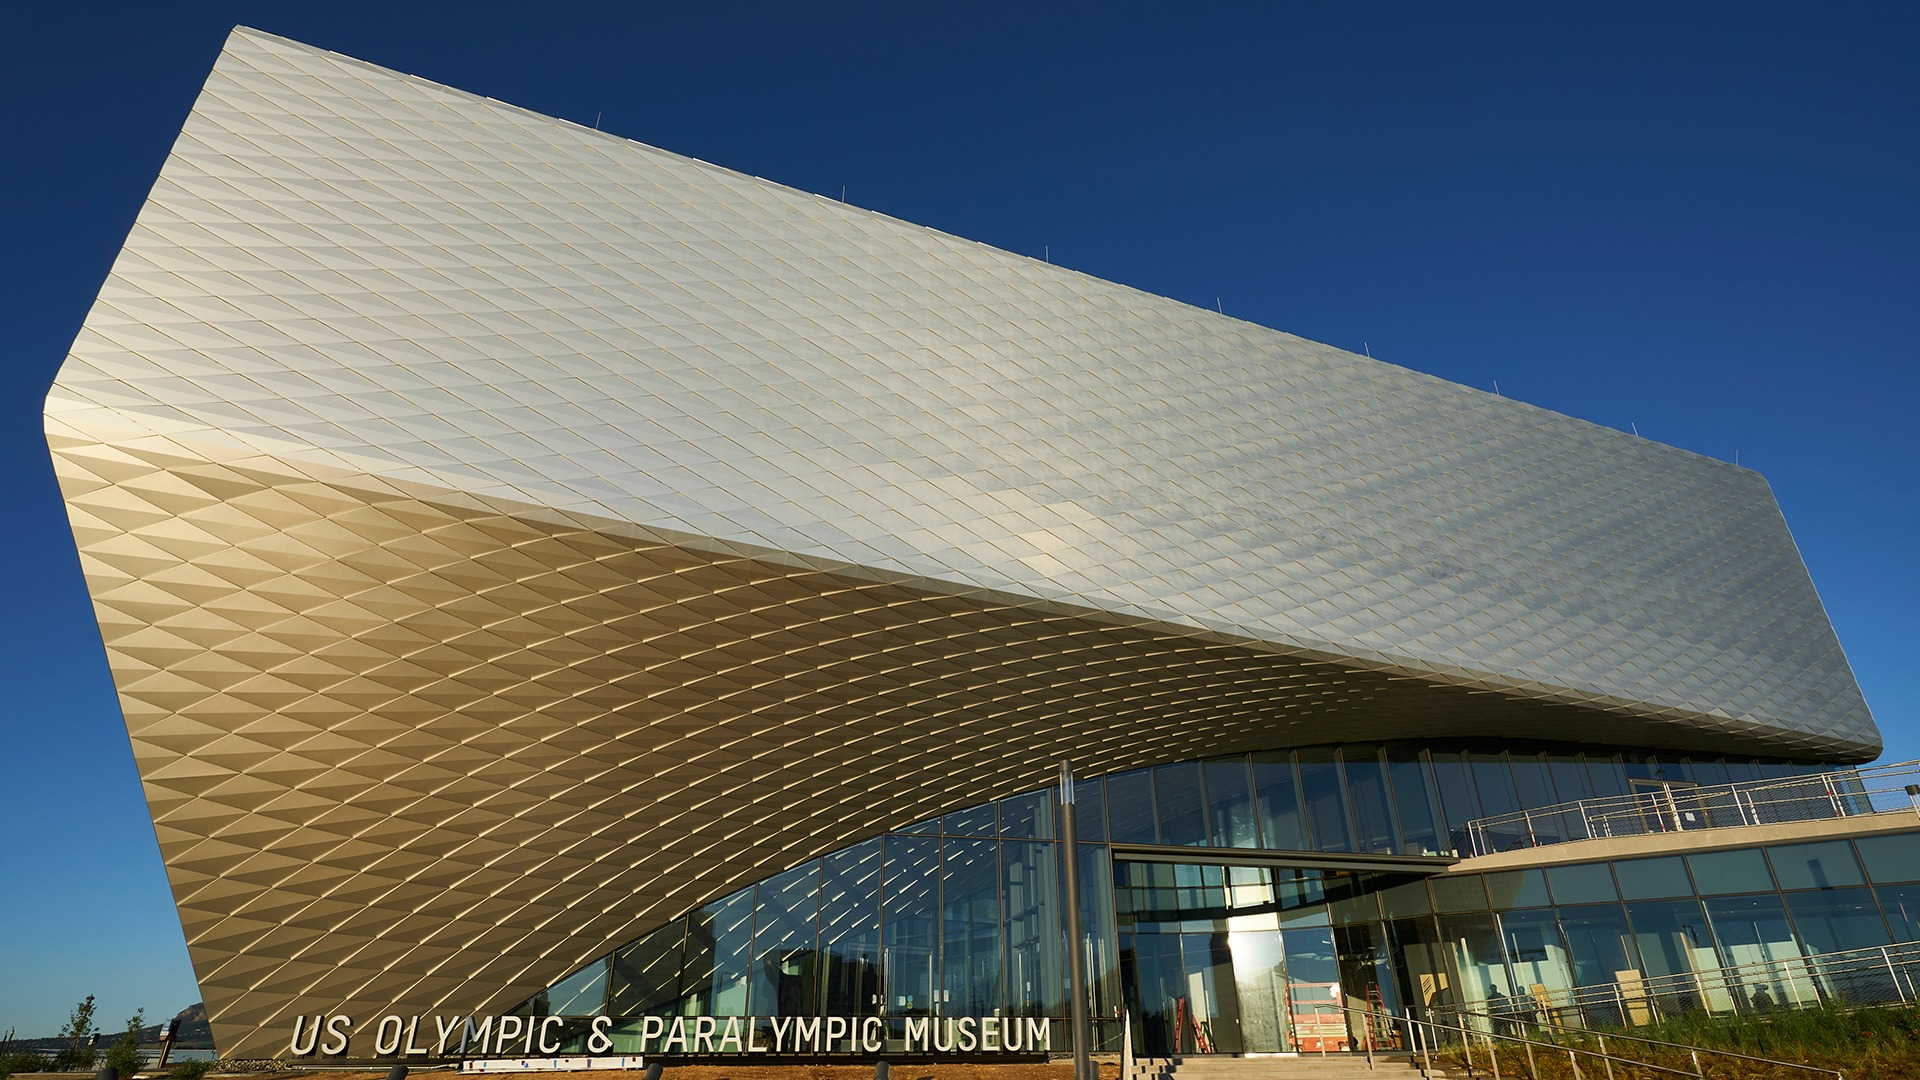 Exterior shot of the Museum with sunlight glistening off the diamond panels